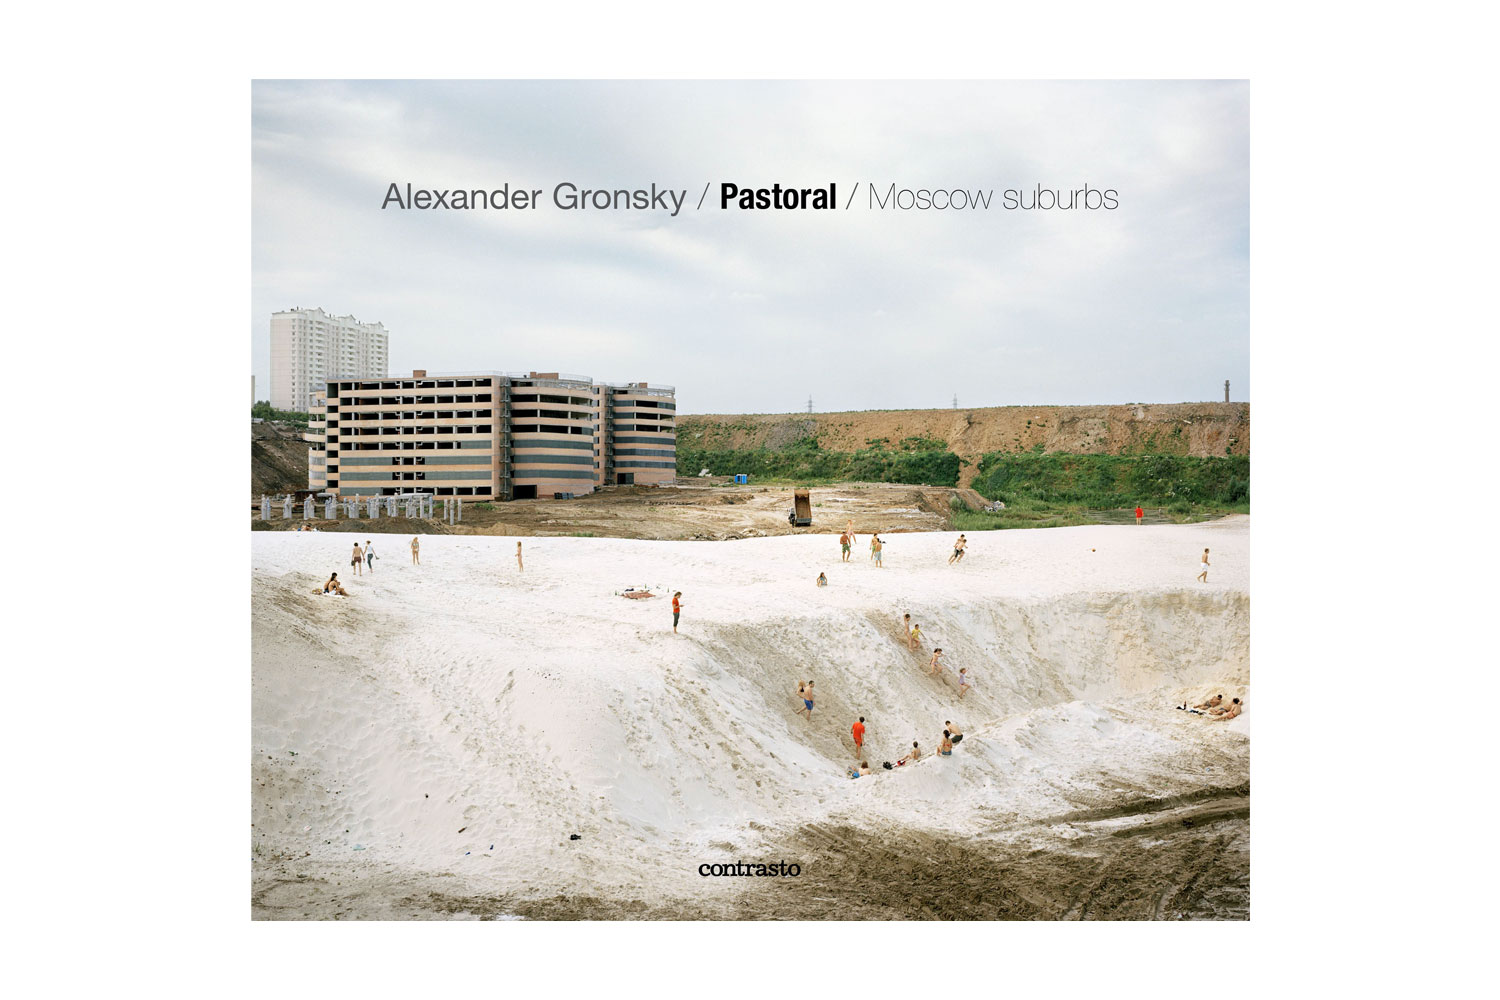 Alexander Gronsky's Pastoral, published by Contrasto As Russia is thrust into the global spotlight, Gronsky takes a pensive look into the outer rims of Moscow's suburbs, seeking moments of temporary relief from persistent political tension.